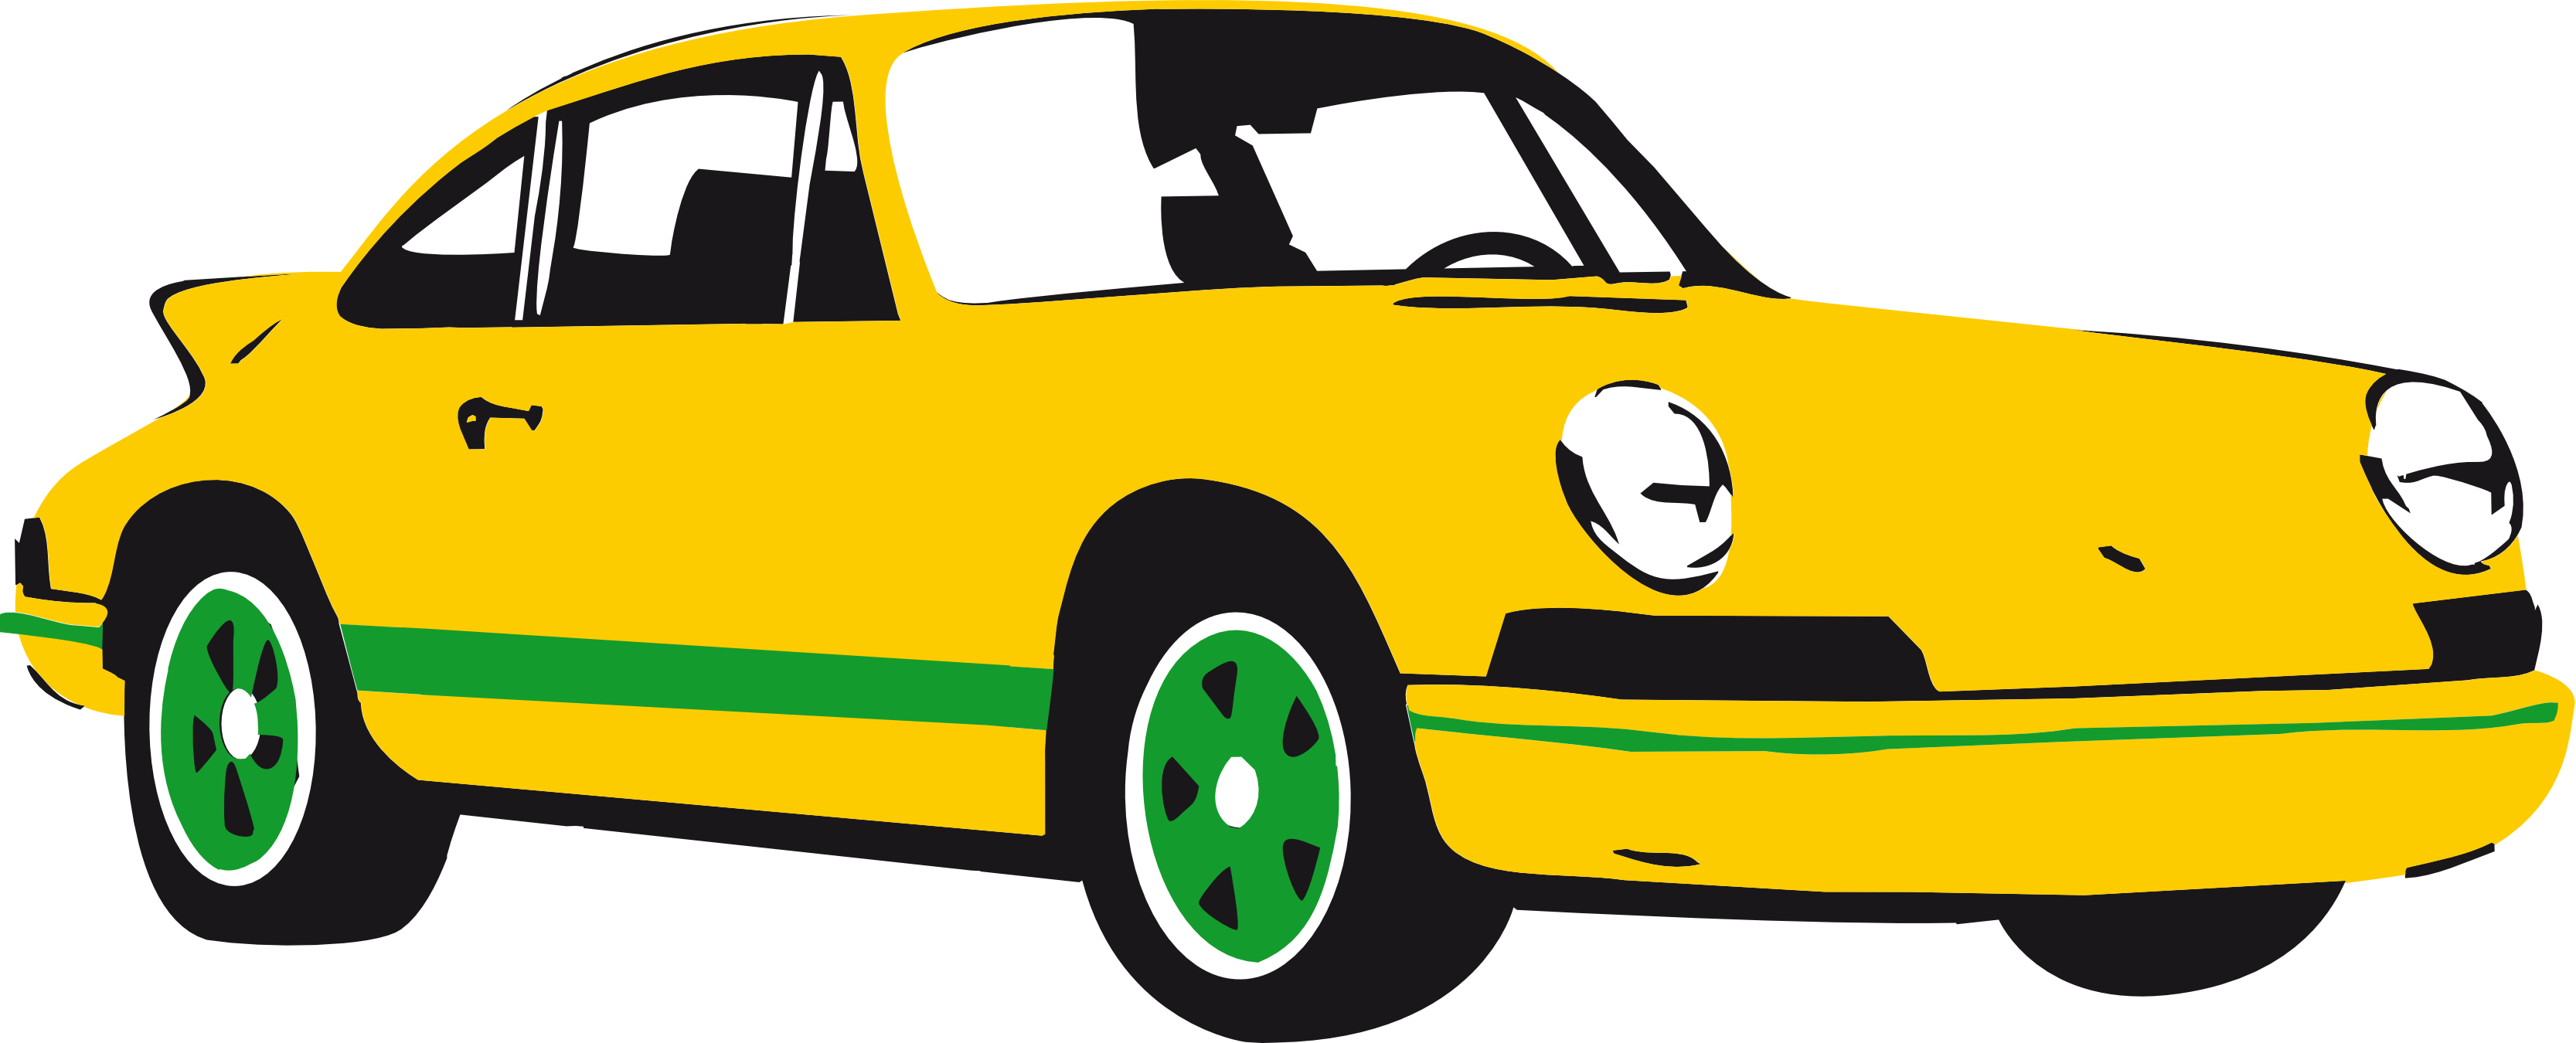 Yellow car clipart free stock Free Car Clip, Download Free Clip Art, Free Clip Art on Clipart Library stock